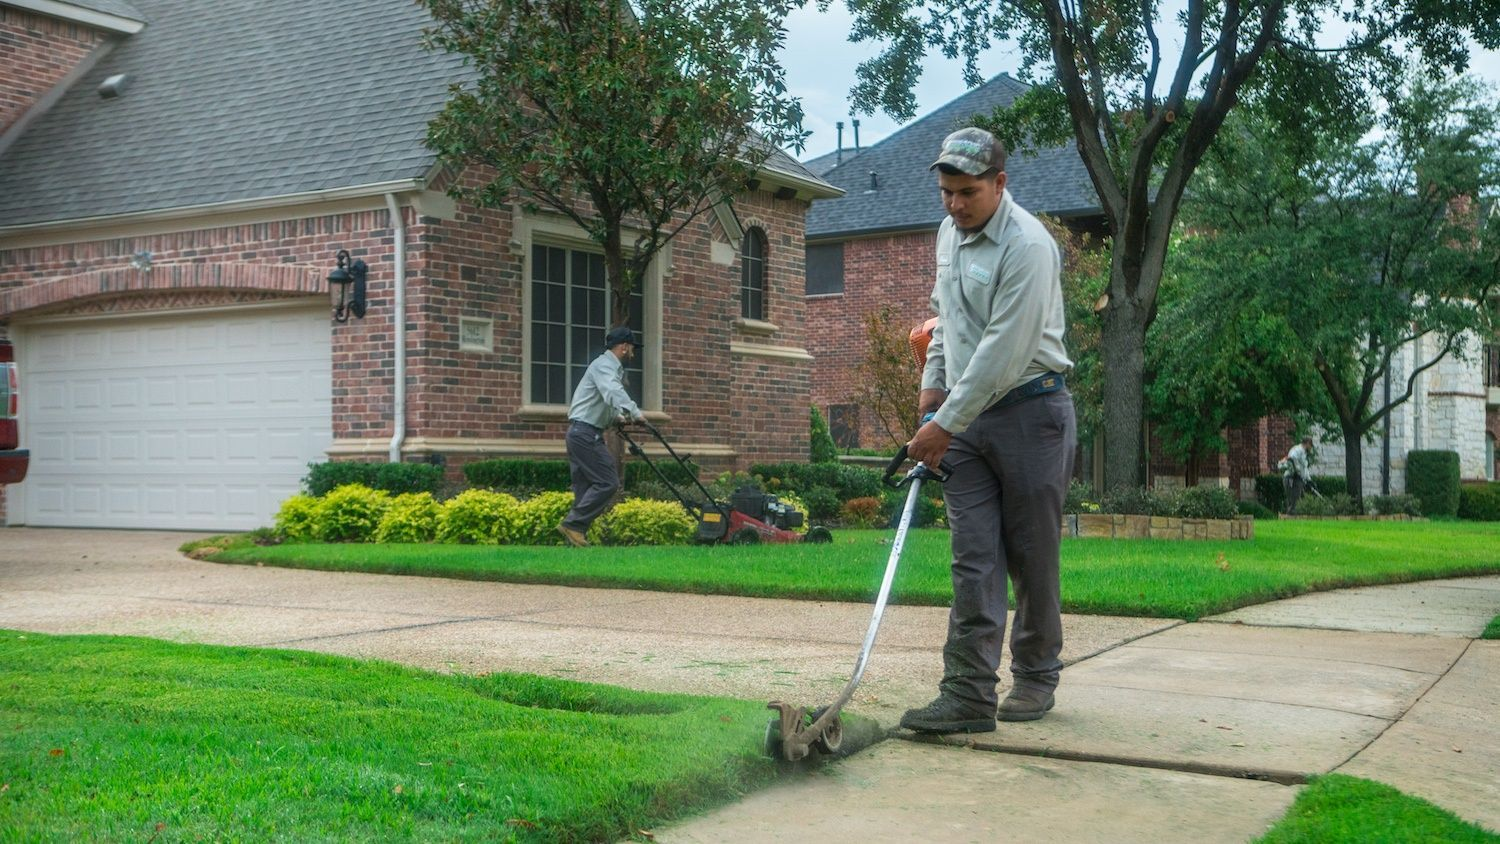 landscaping technicians mowing and trimming lawn